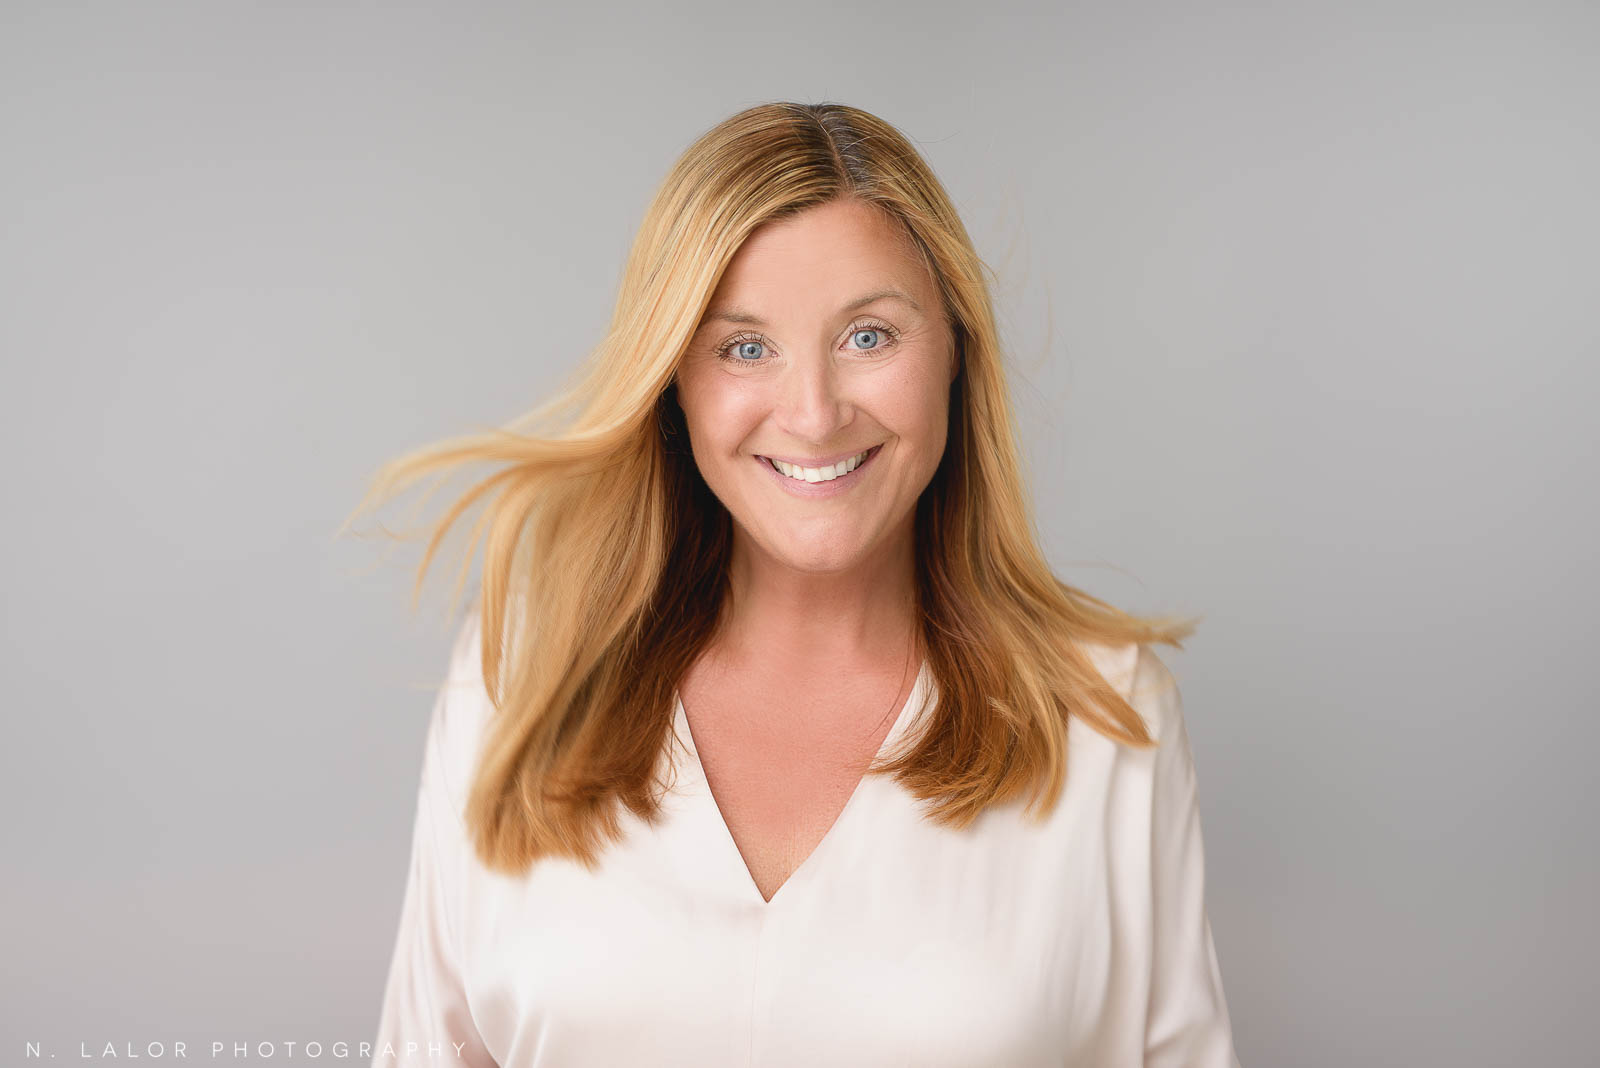 Casual Studio headshot for a woman. Personal headshot by N. Lalor Photography. Studio in Greenwich Connecticut.